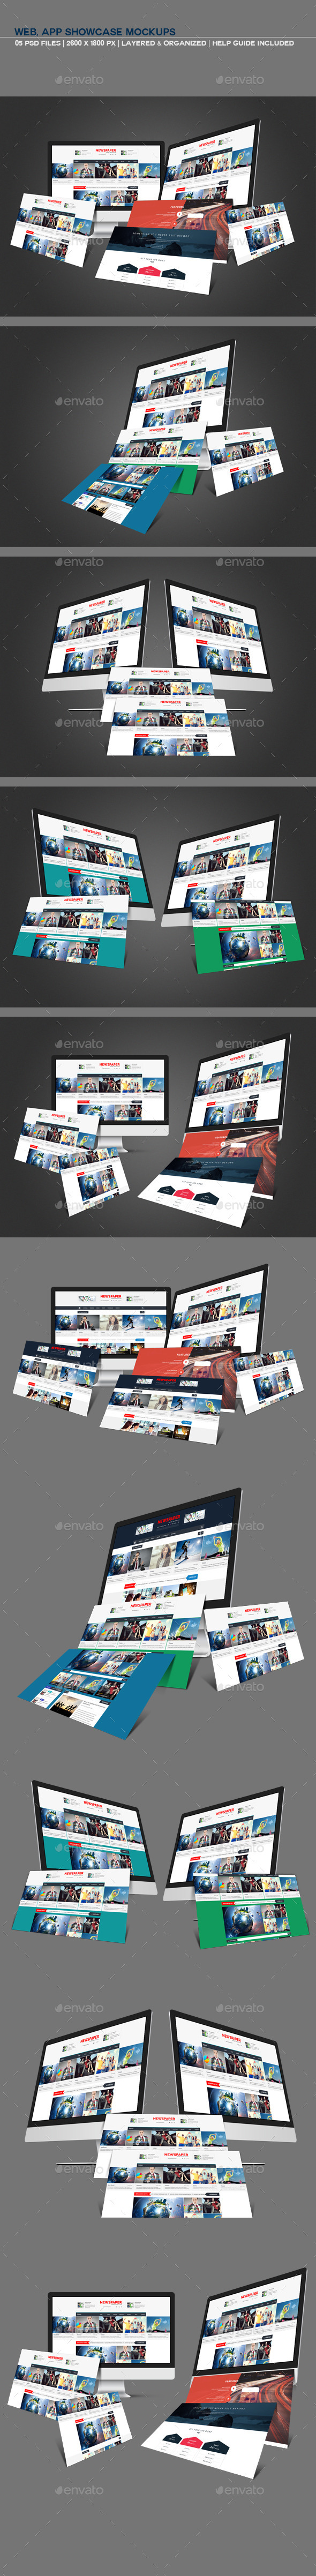 GraphicRiver Web-App Showcase Mockups 10409395